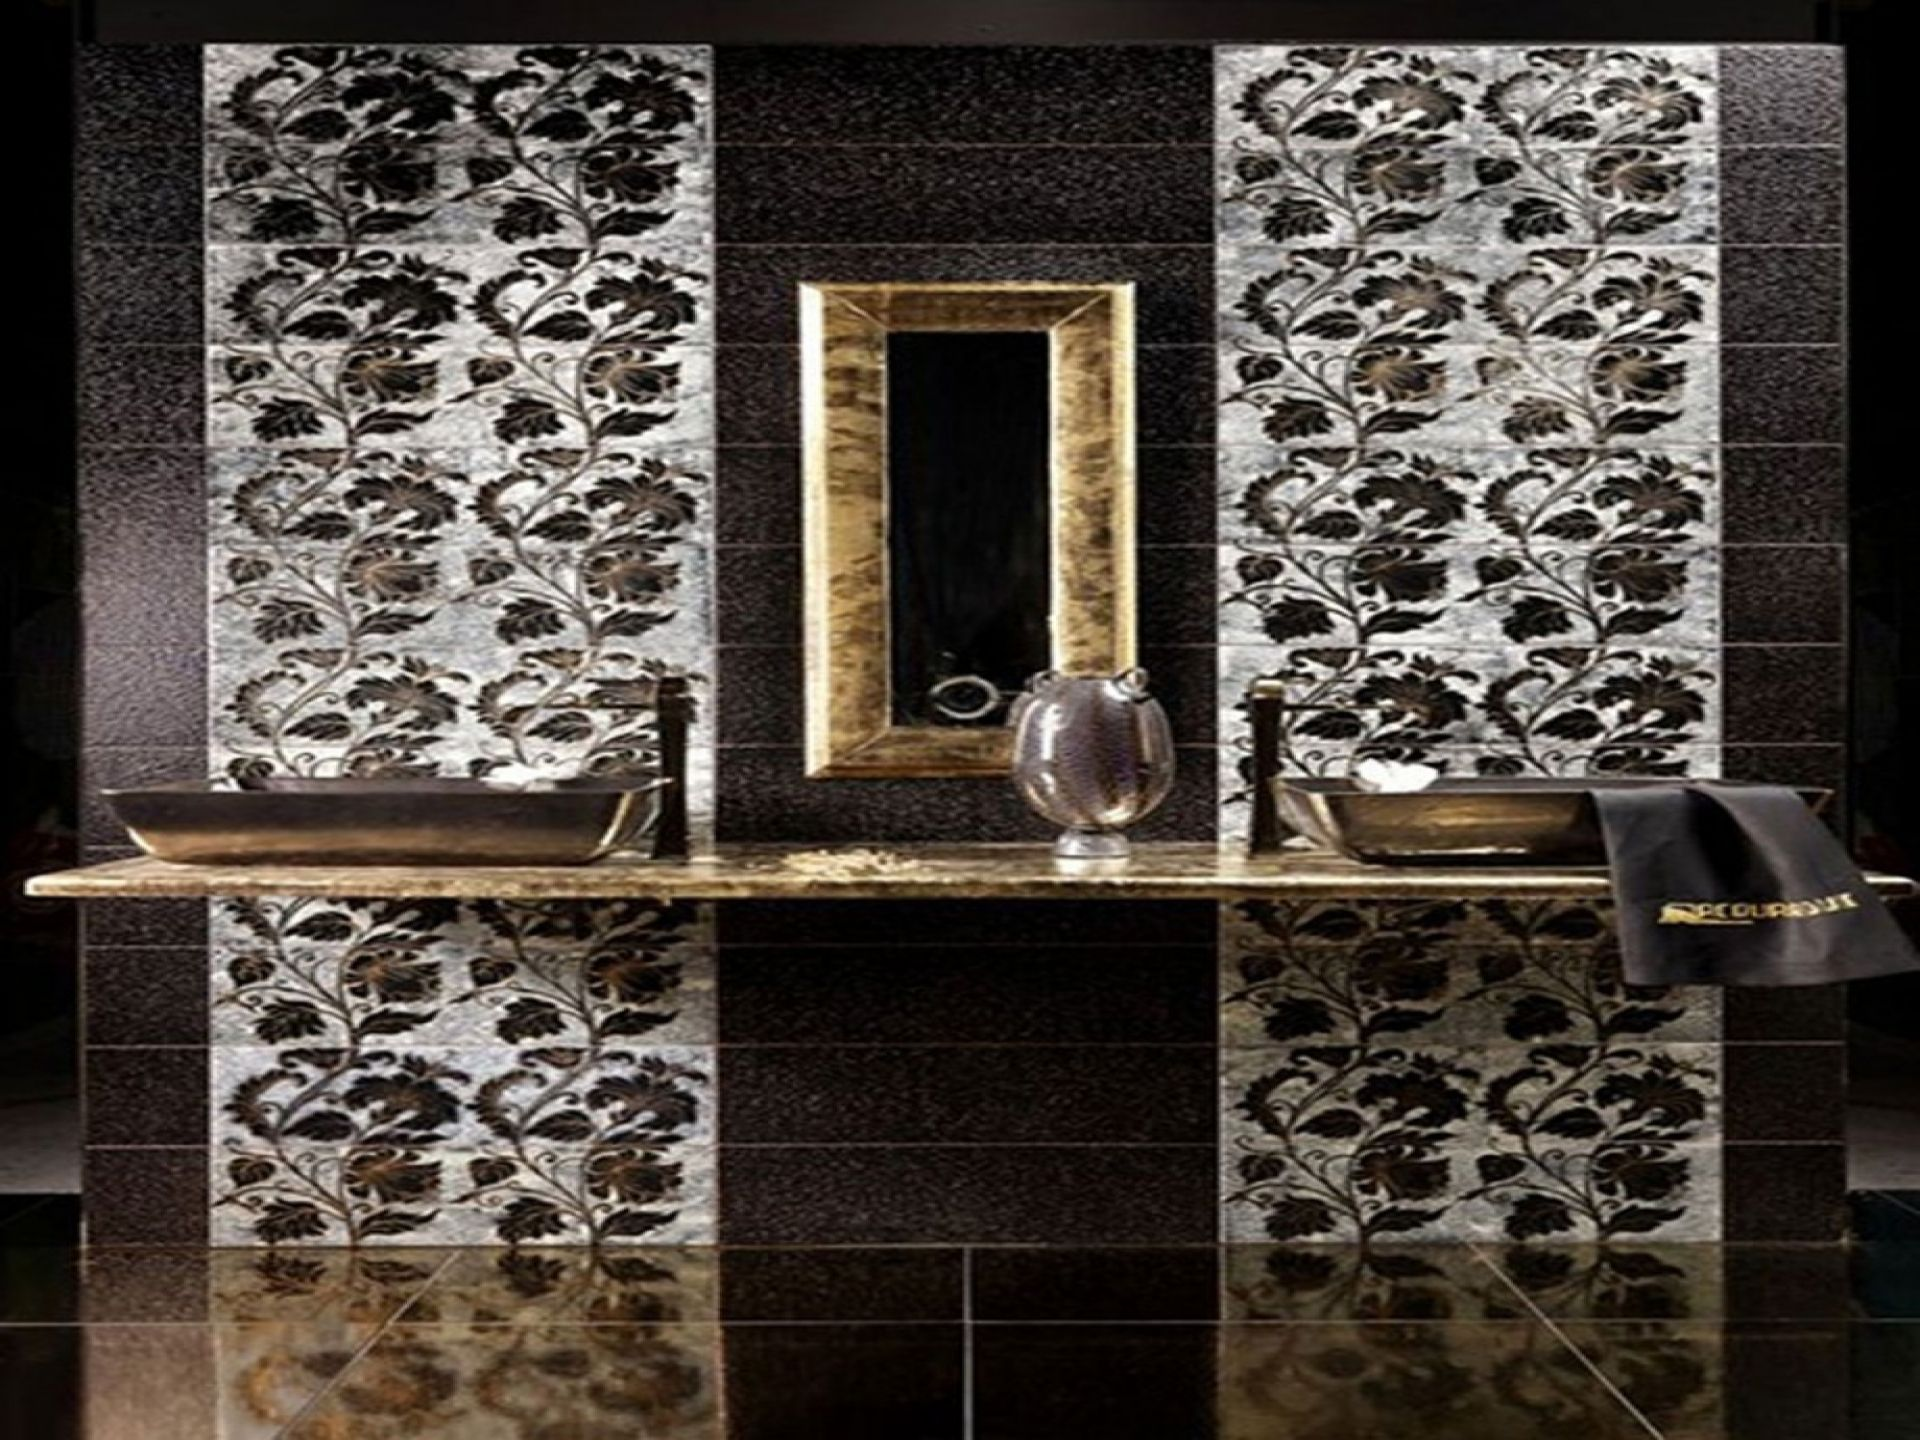 Mosaic Bathroom Tile Designs Decorating Ideas With Floral